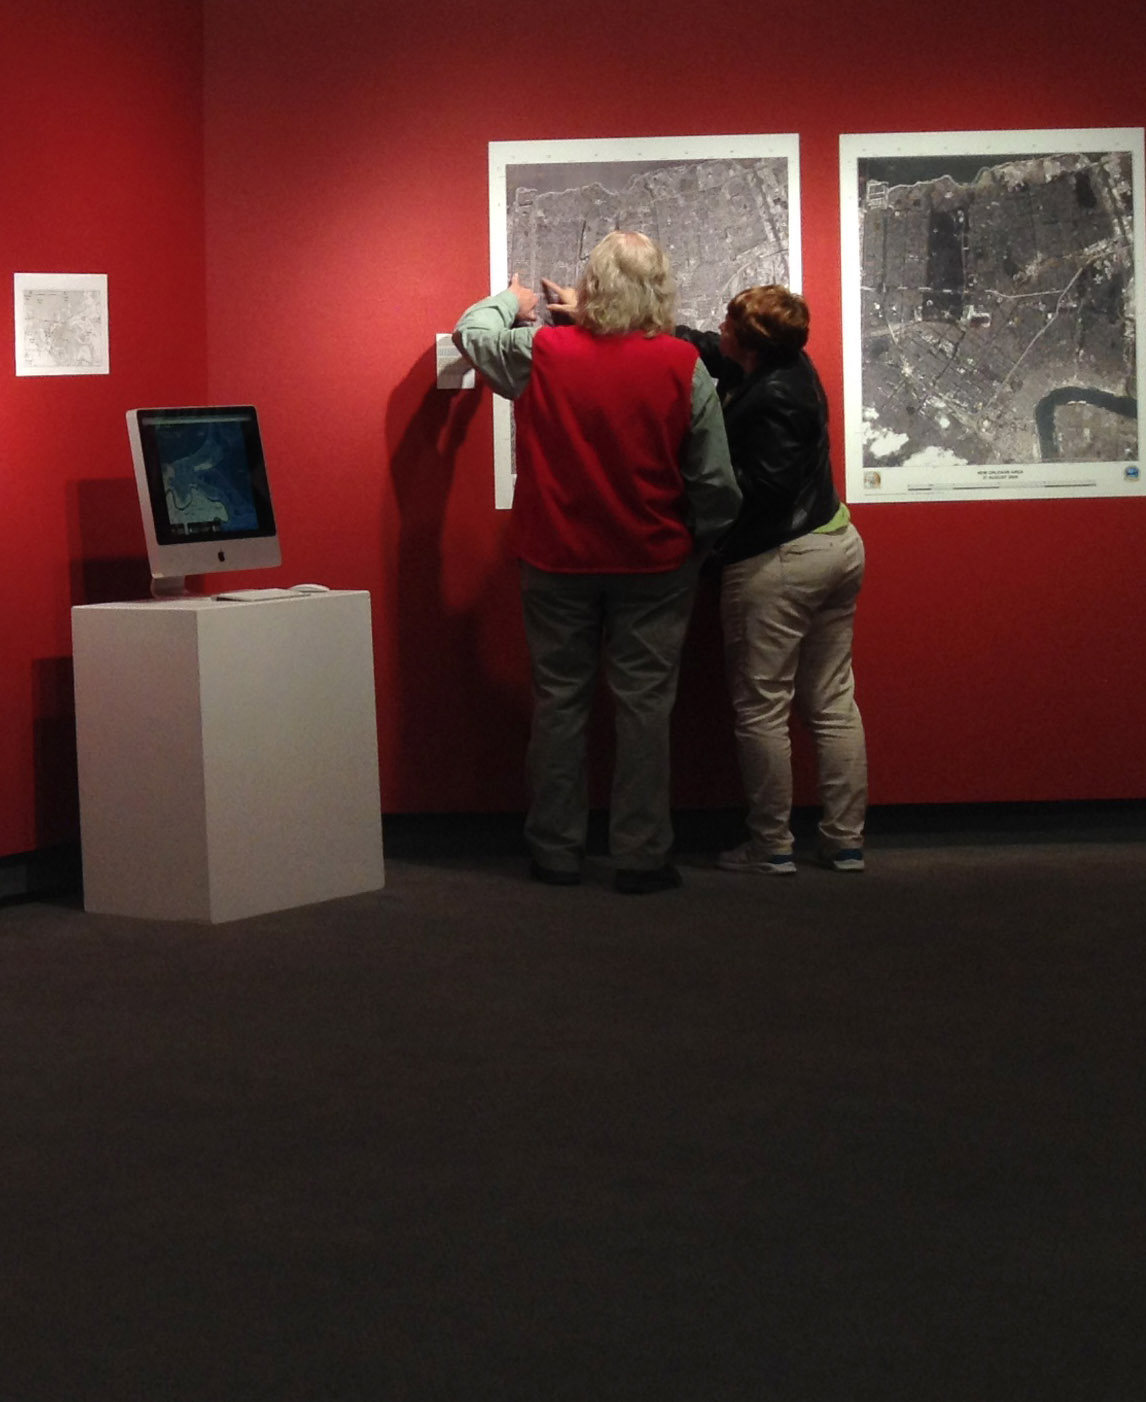 People walking around and looking at a gallery exhibit.